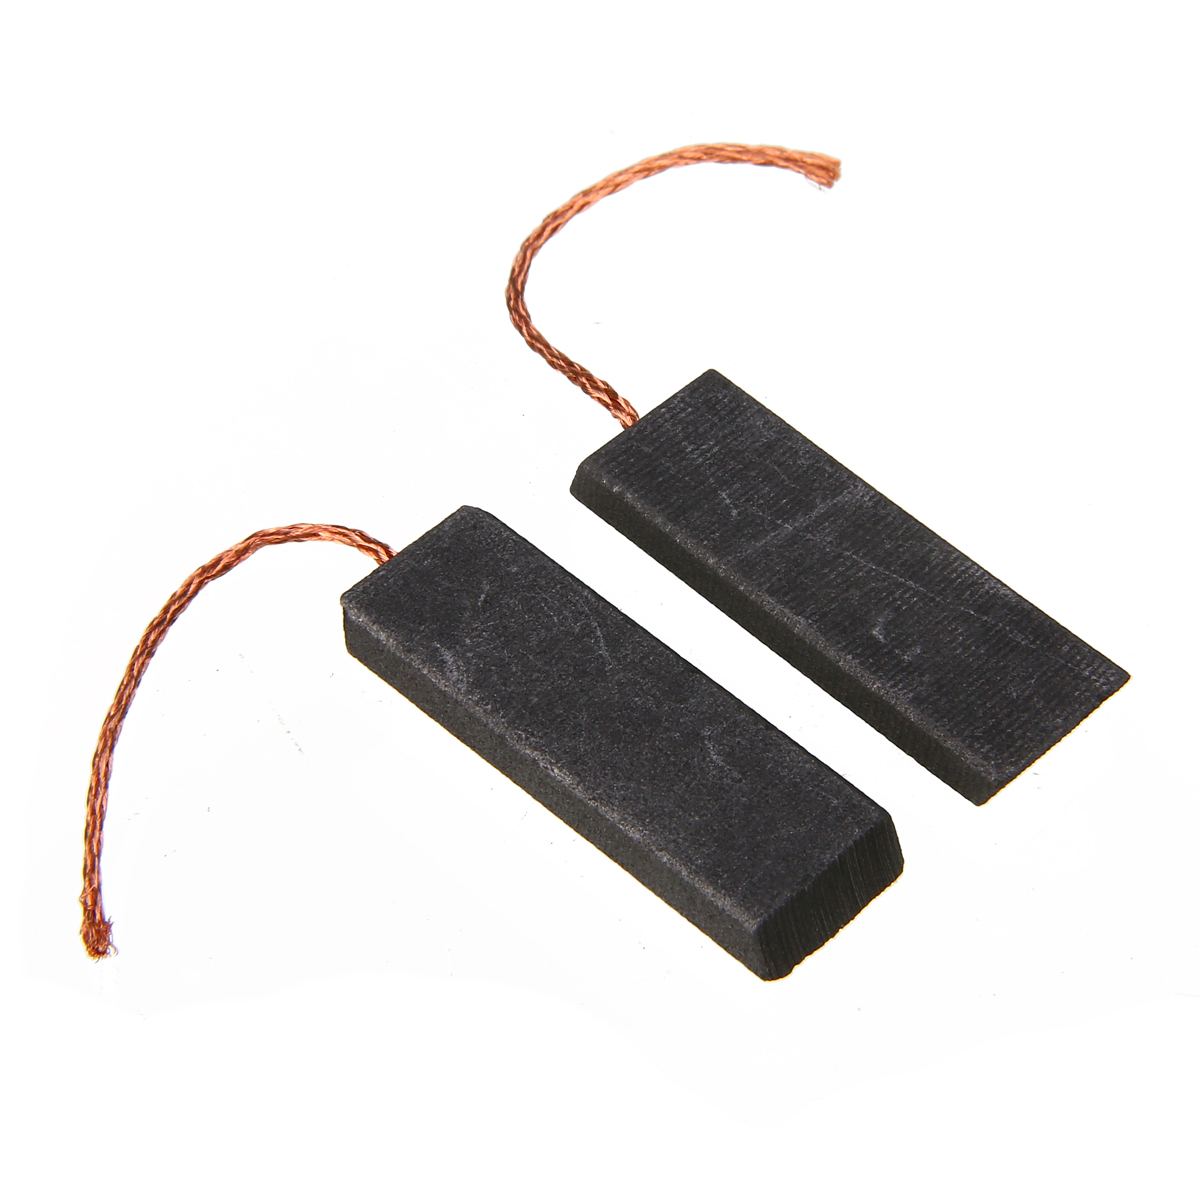 2Pcs Washing Machine Motor Carbon Brush 5x13.5x39mm With 70mm Length Lead For Washing Machine Black